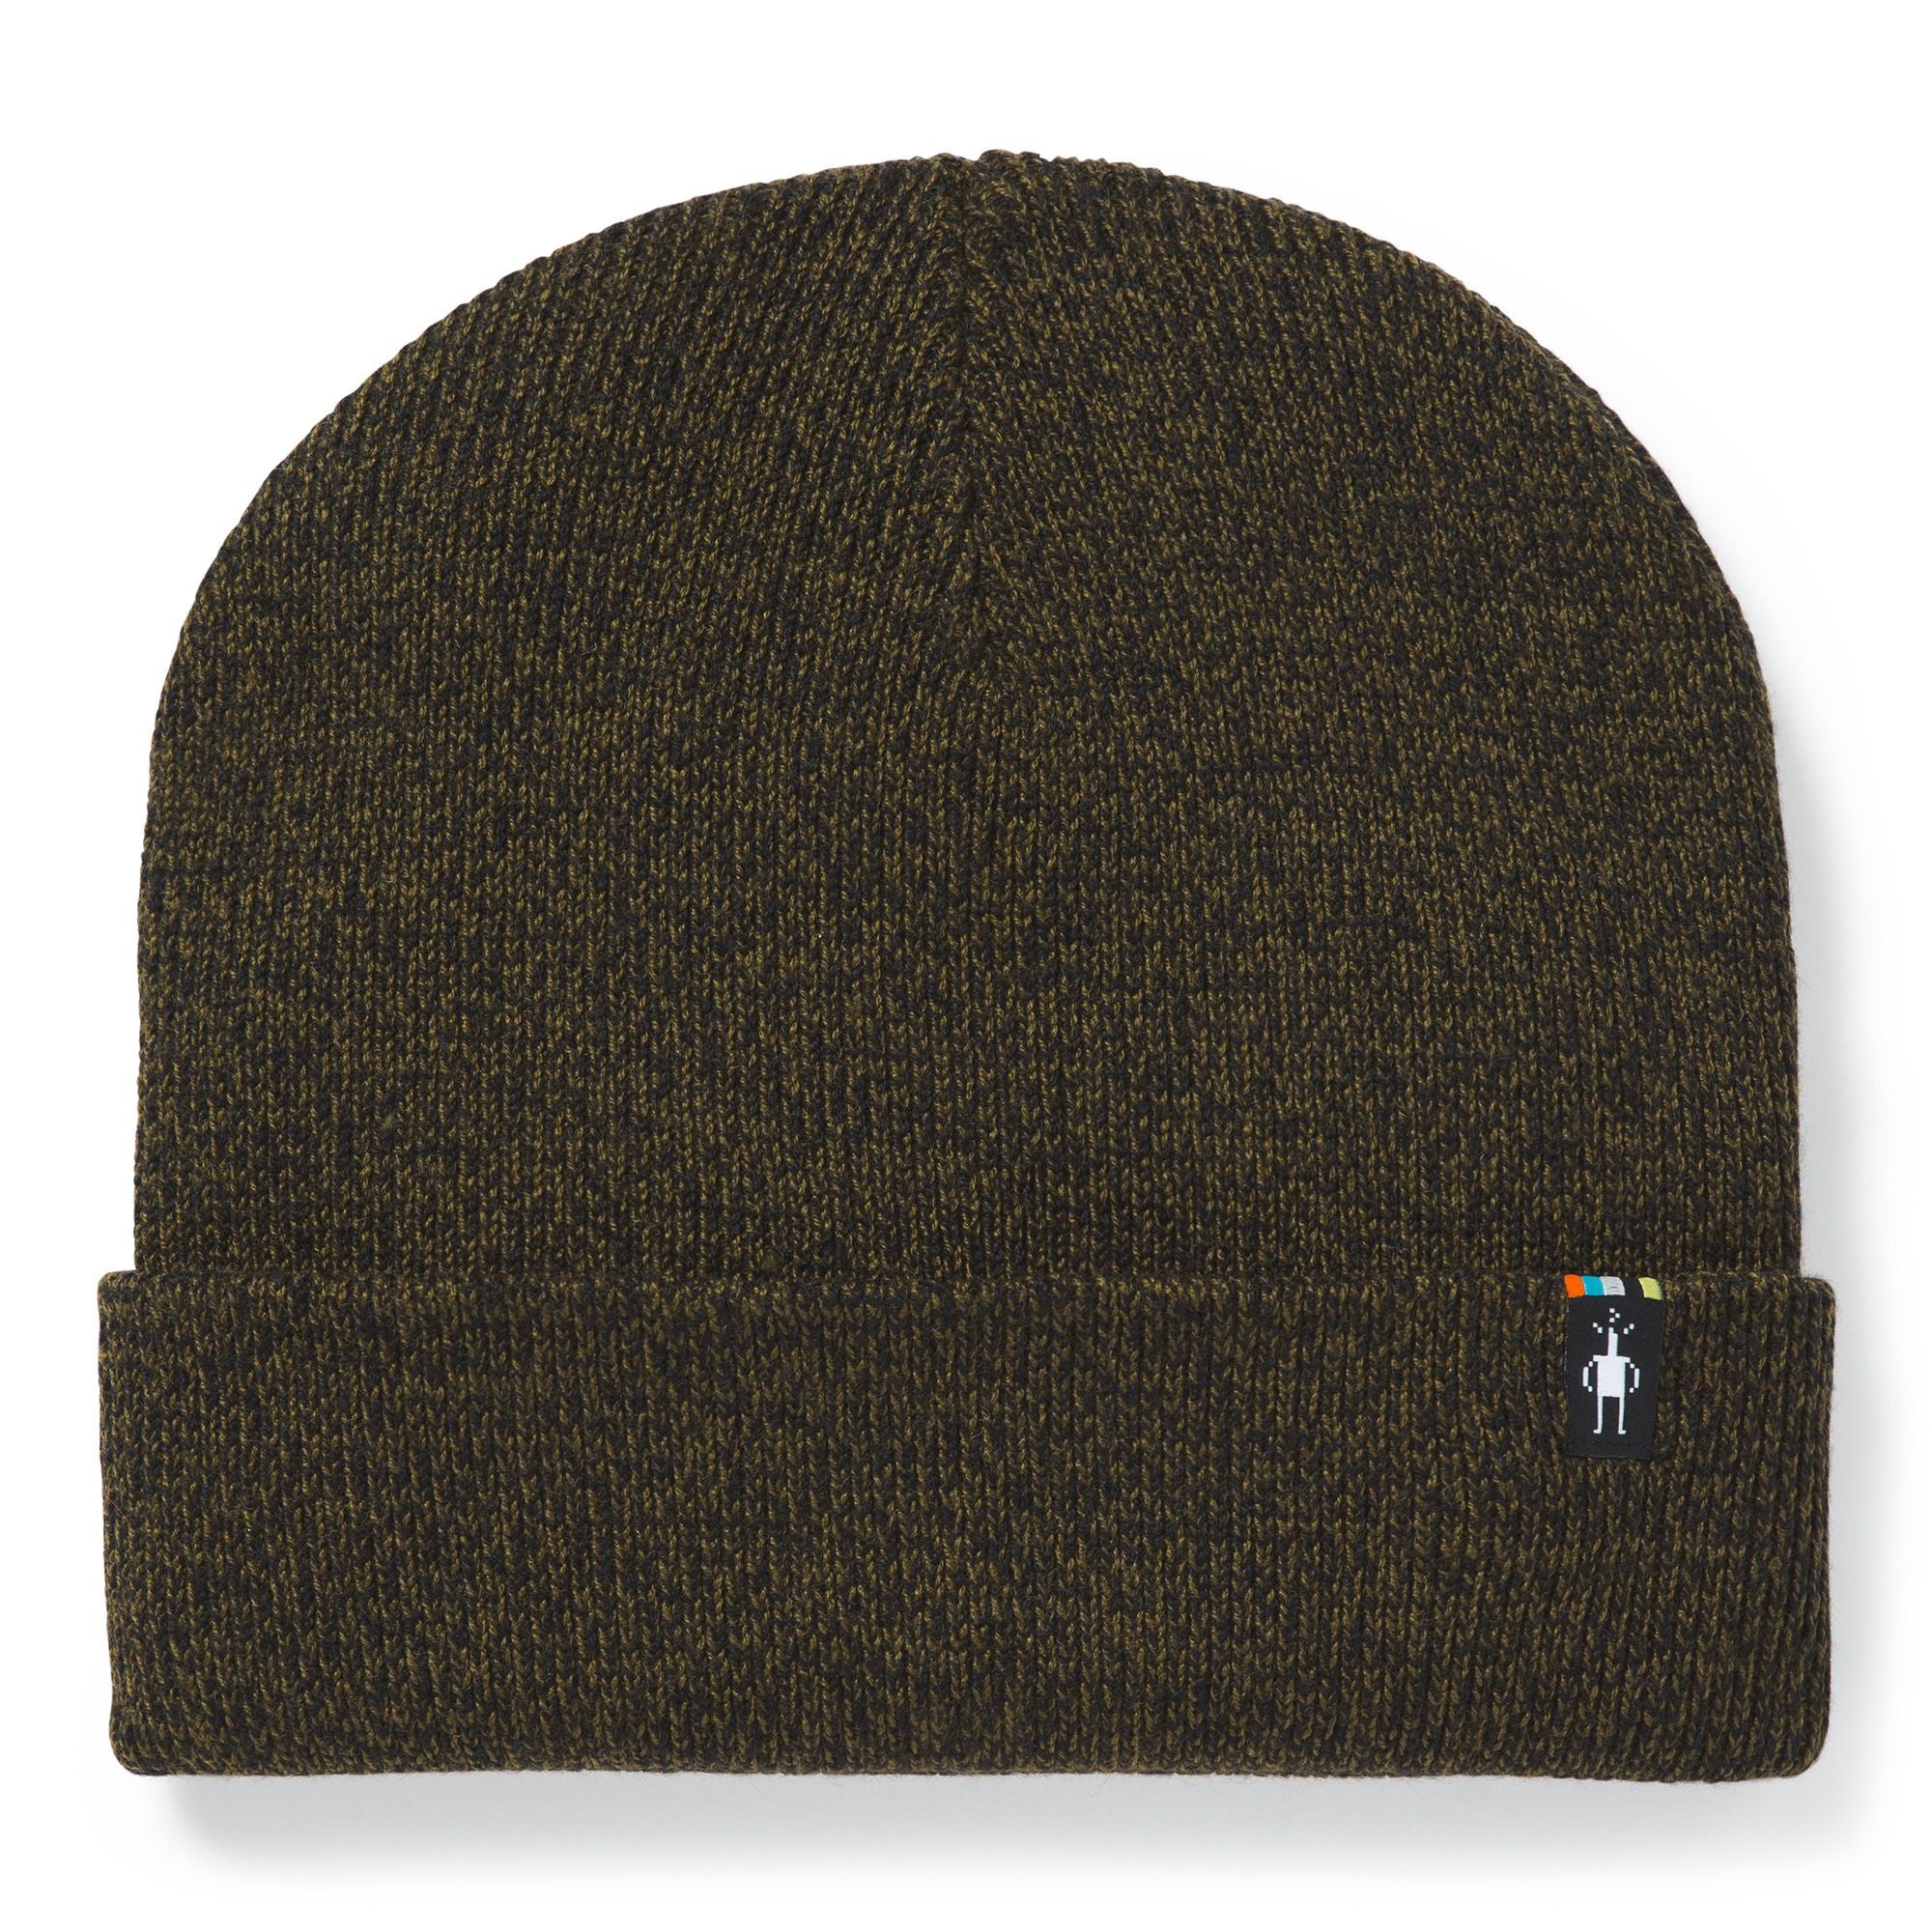 SMARTWOOL - COZY CABIN HAT IN MILITARY OLIVE